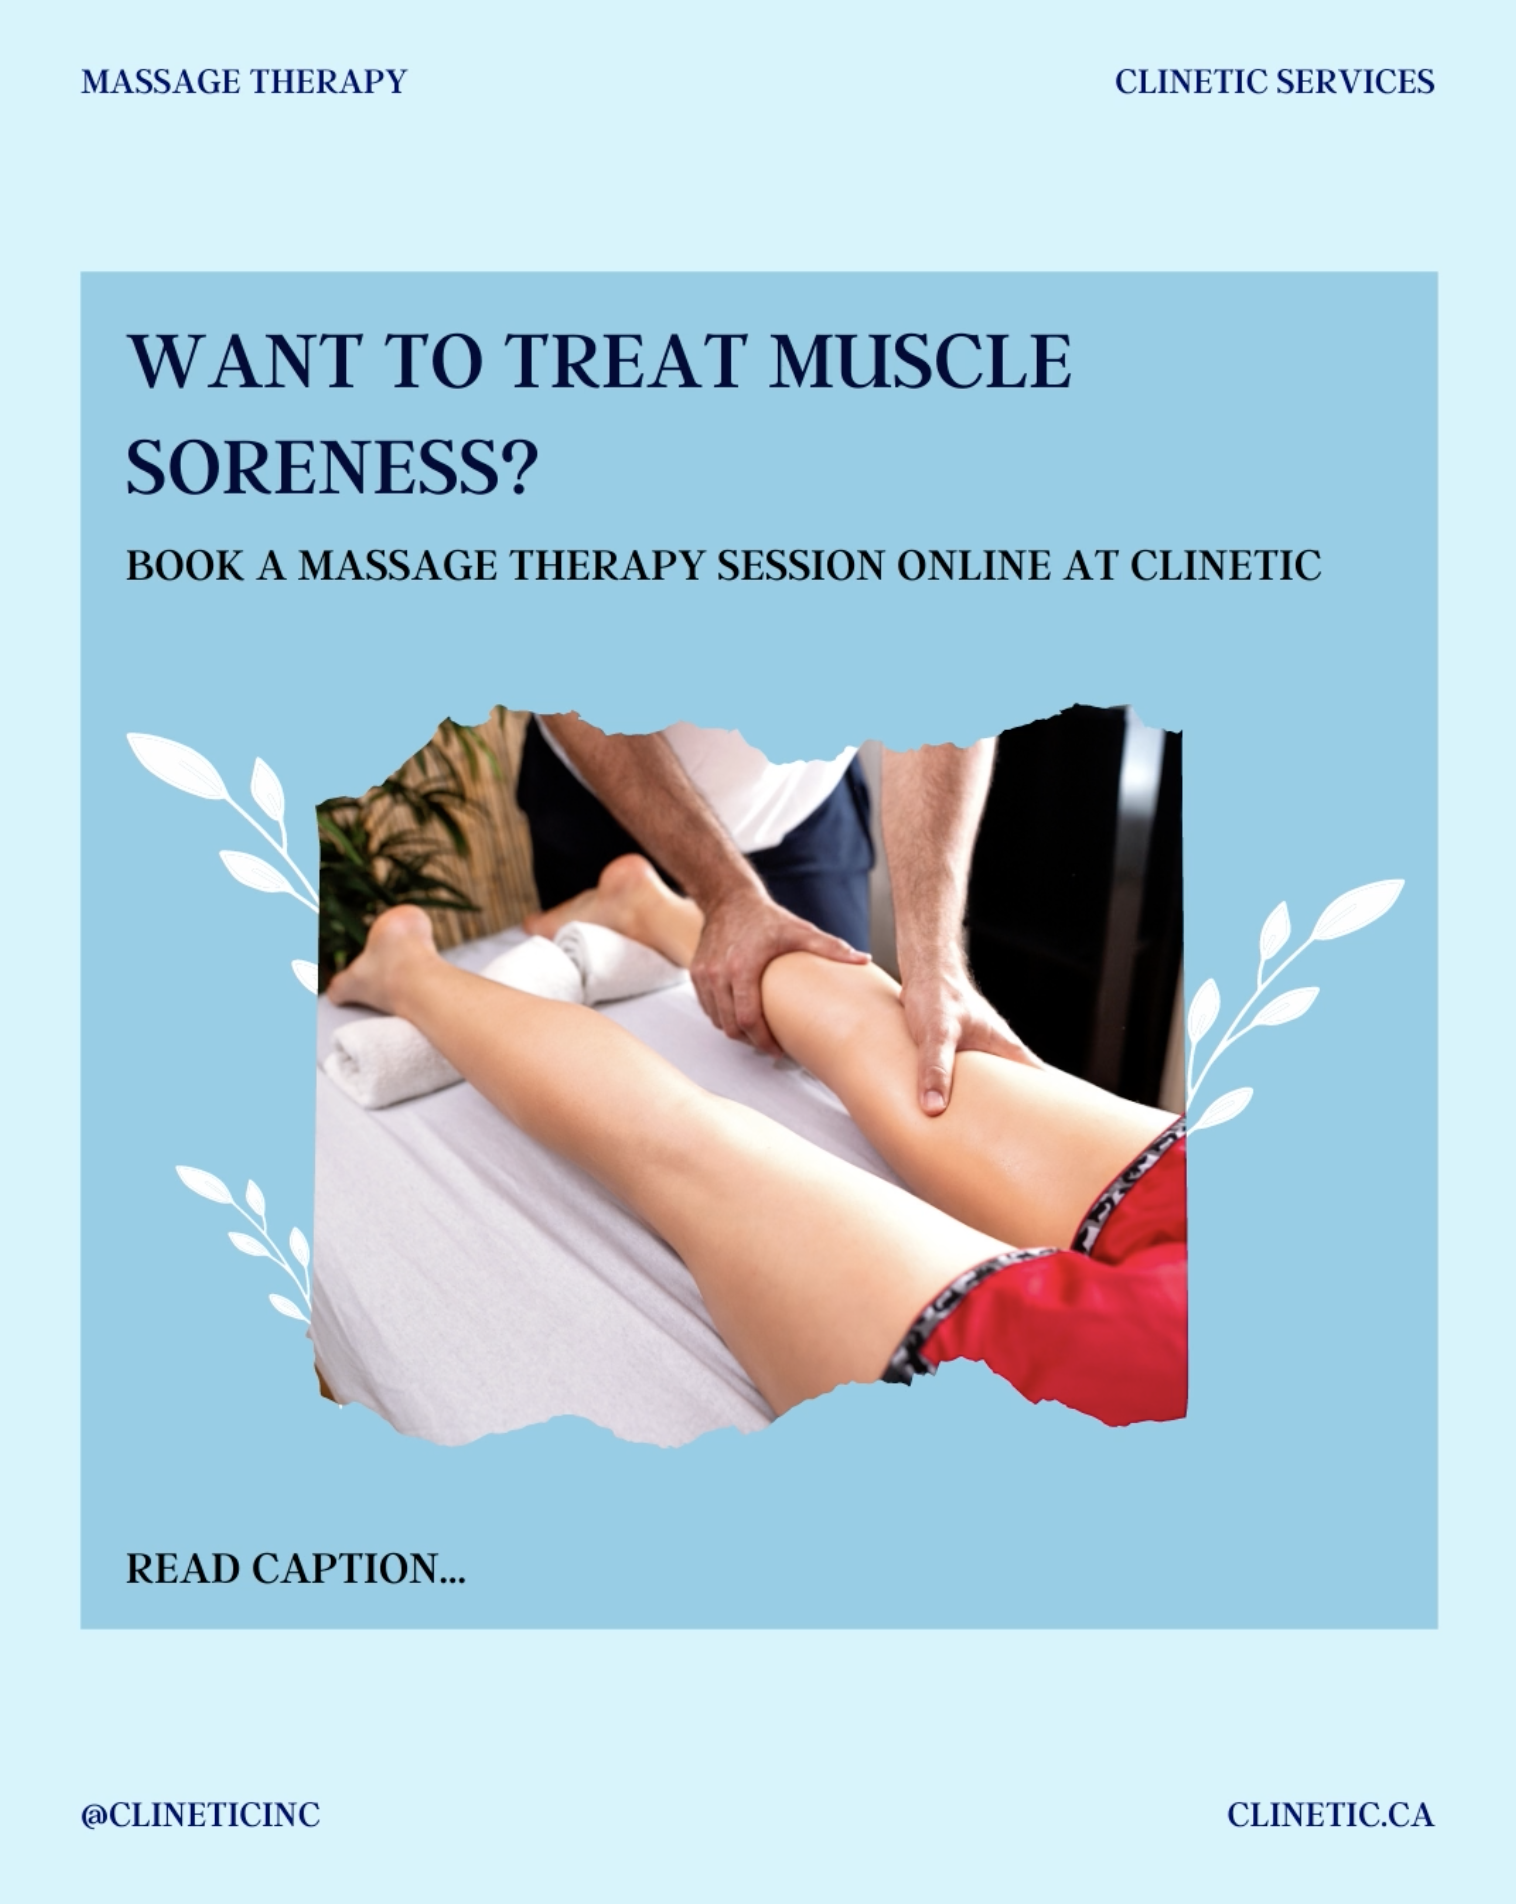 Do you have muscle soreness?